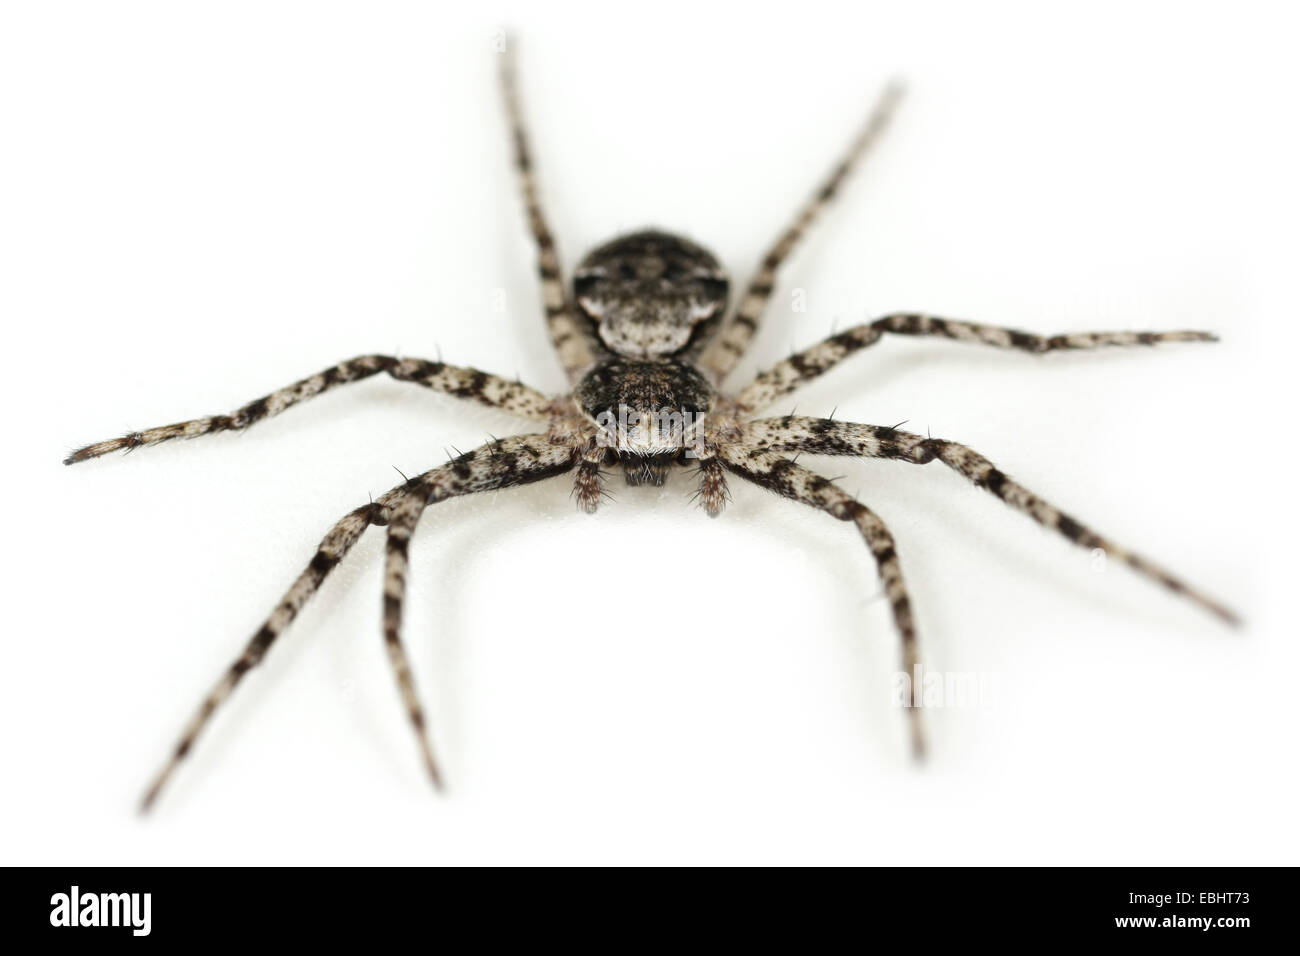 Lichen Running-spider (Philodromus margaritatus) on a white background, part of the family Philodromidae - Running - Stock Image